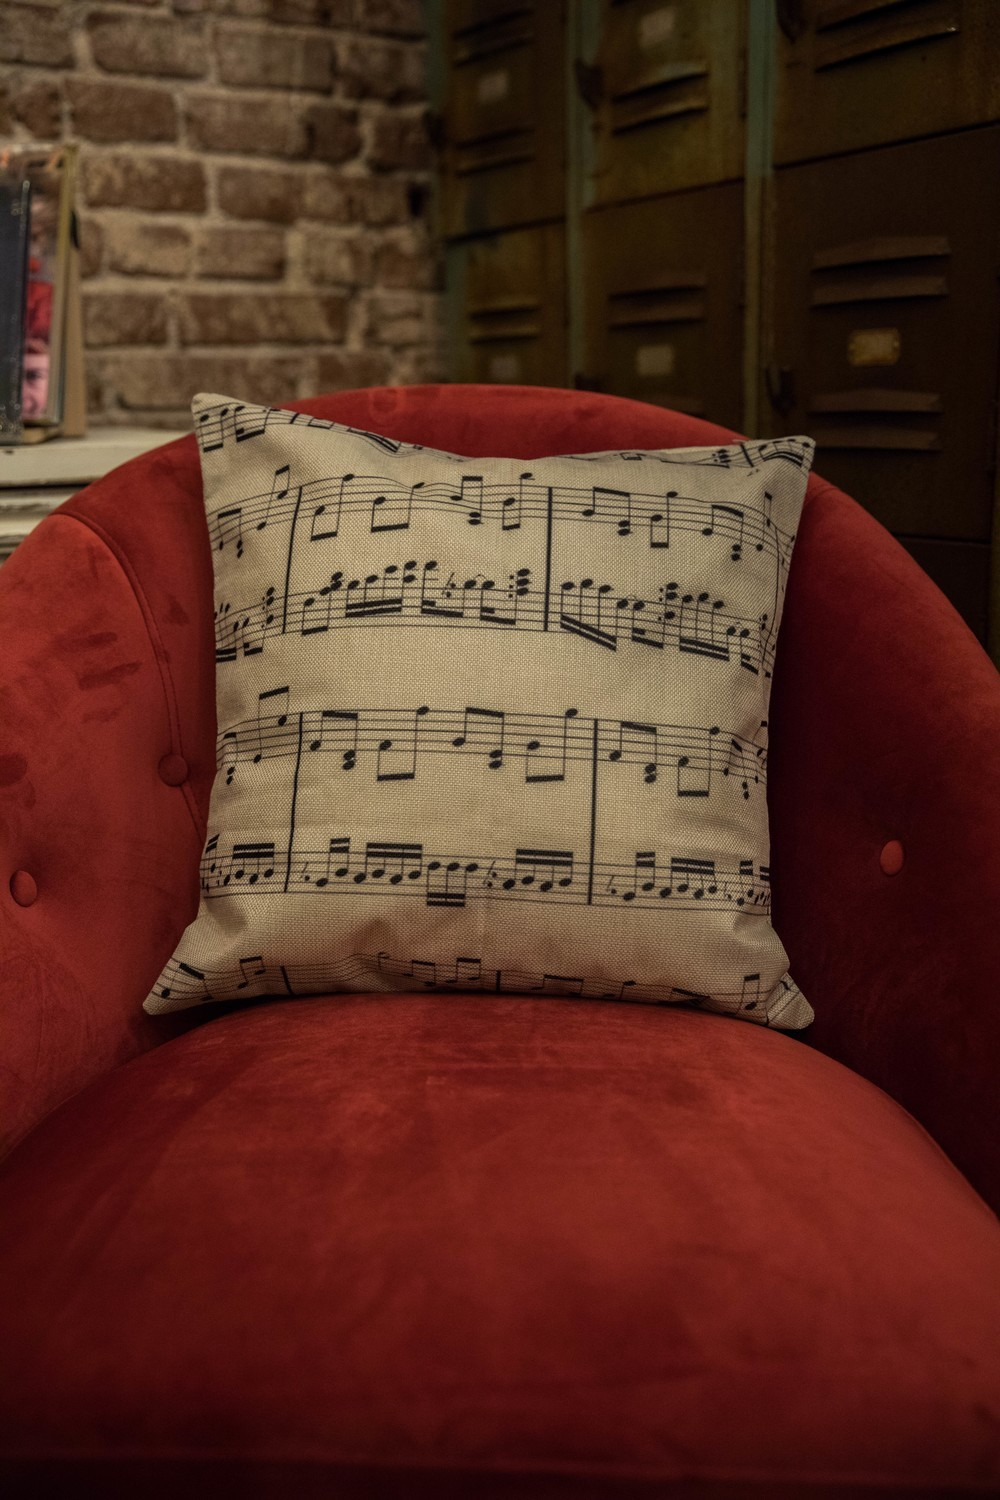 DittyTV Music Note Pillow